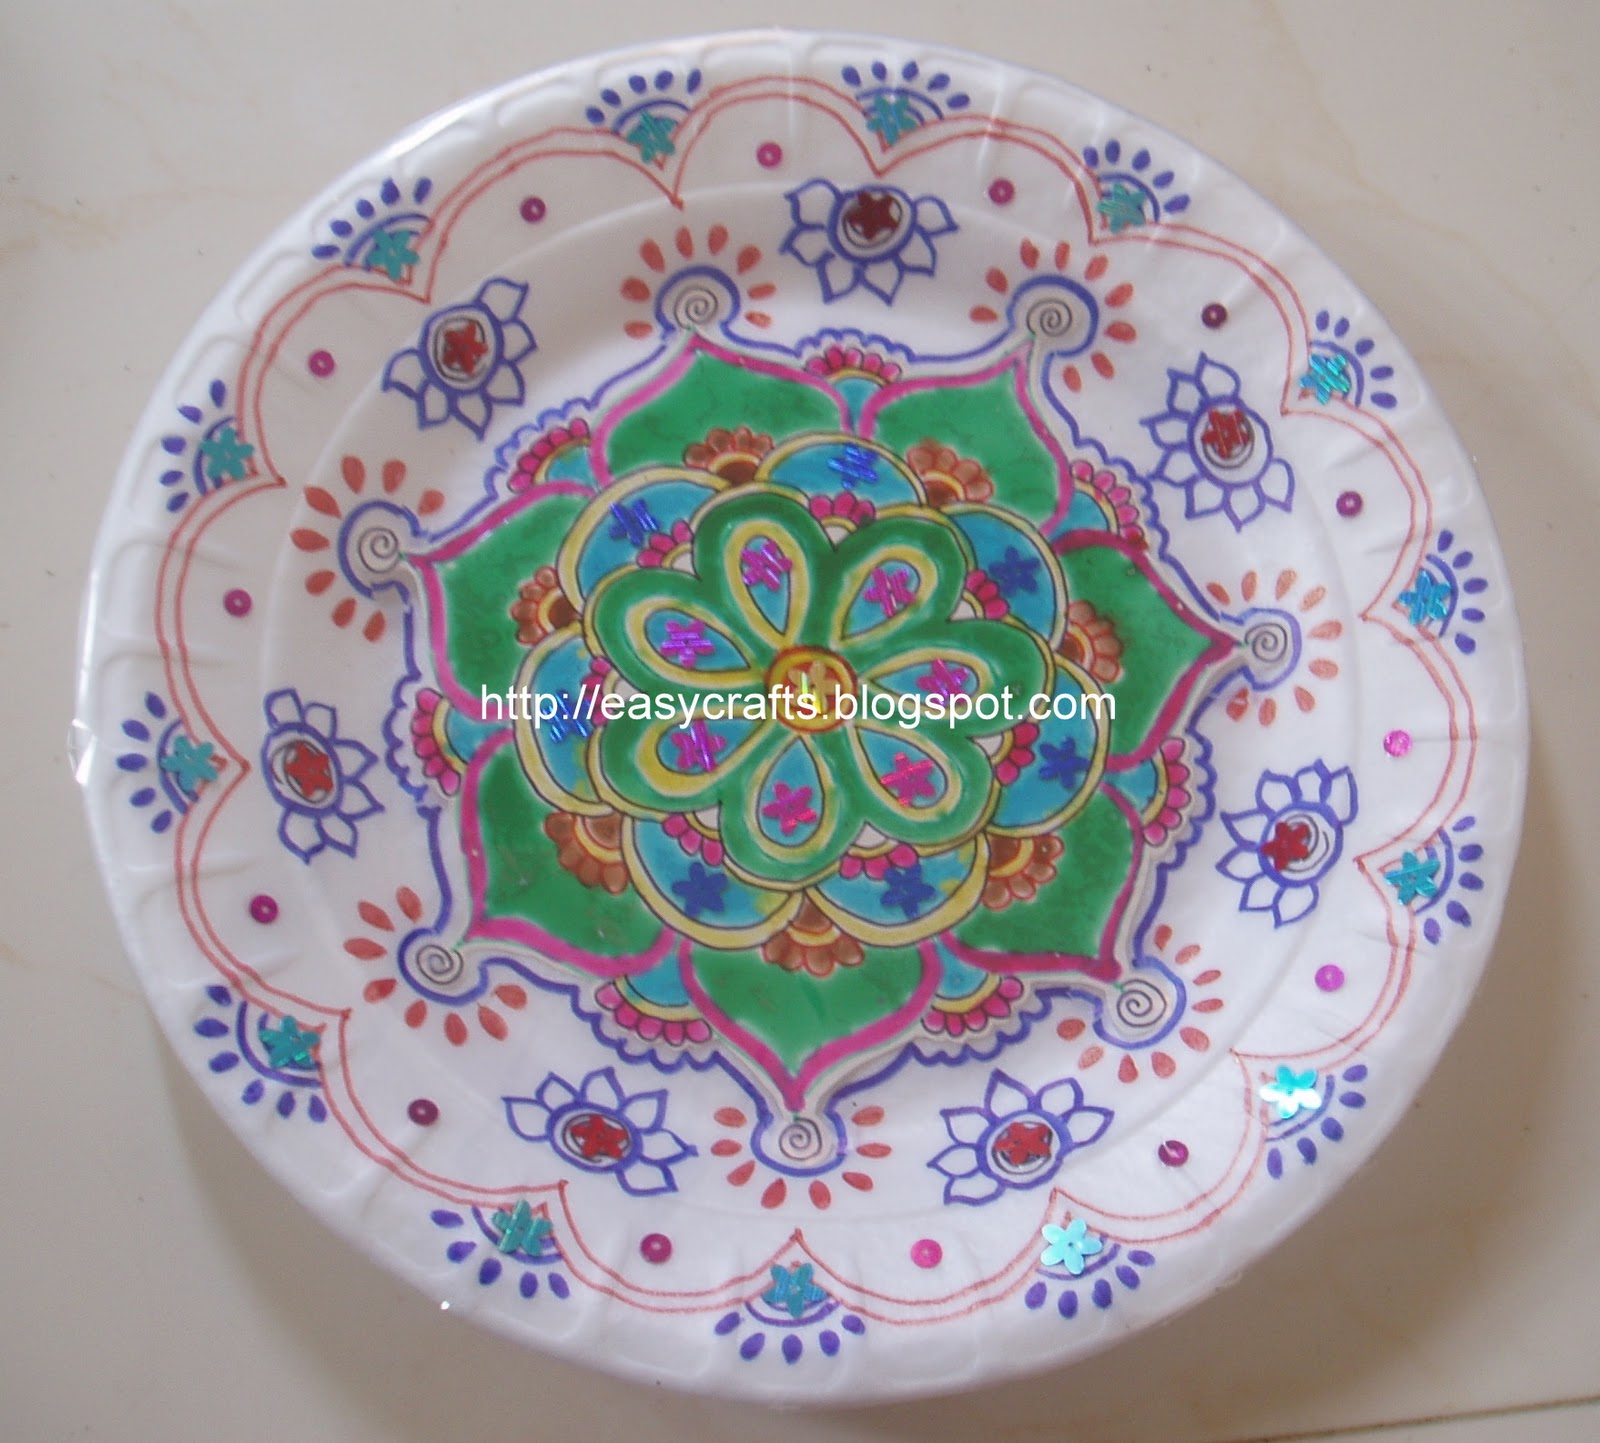 easy crafts explore your creativity decorative aarti plate